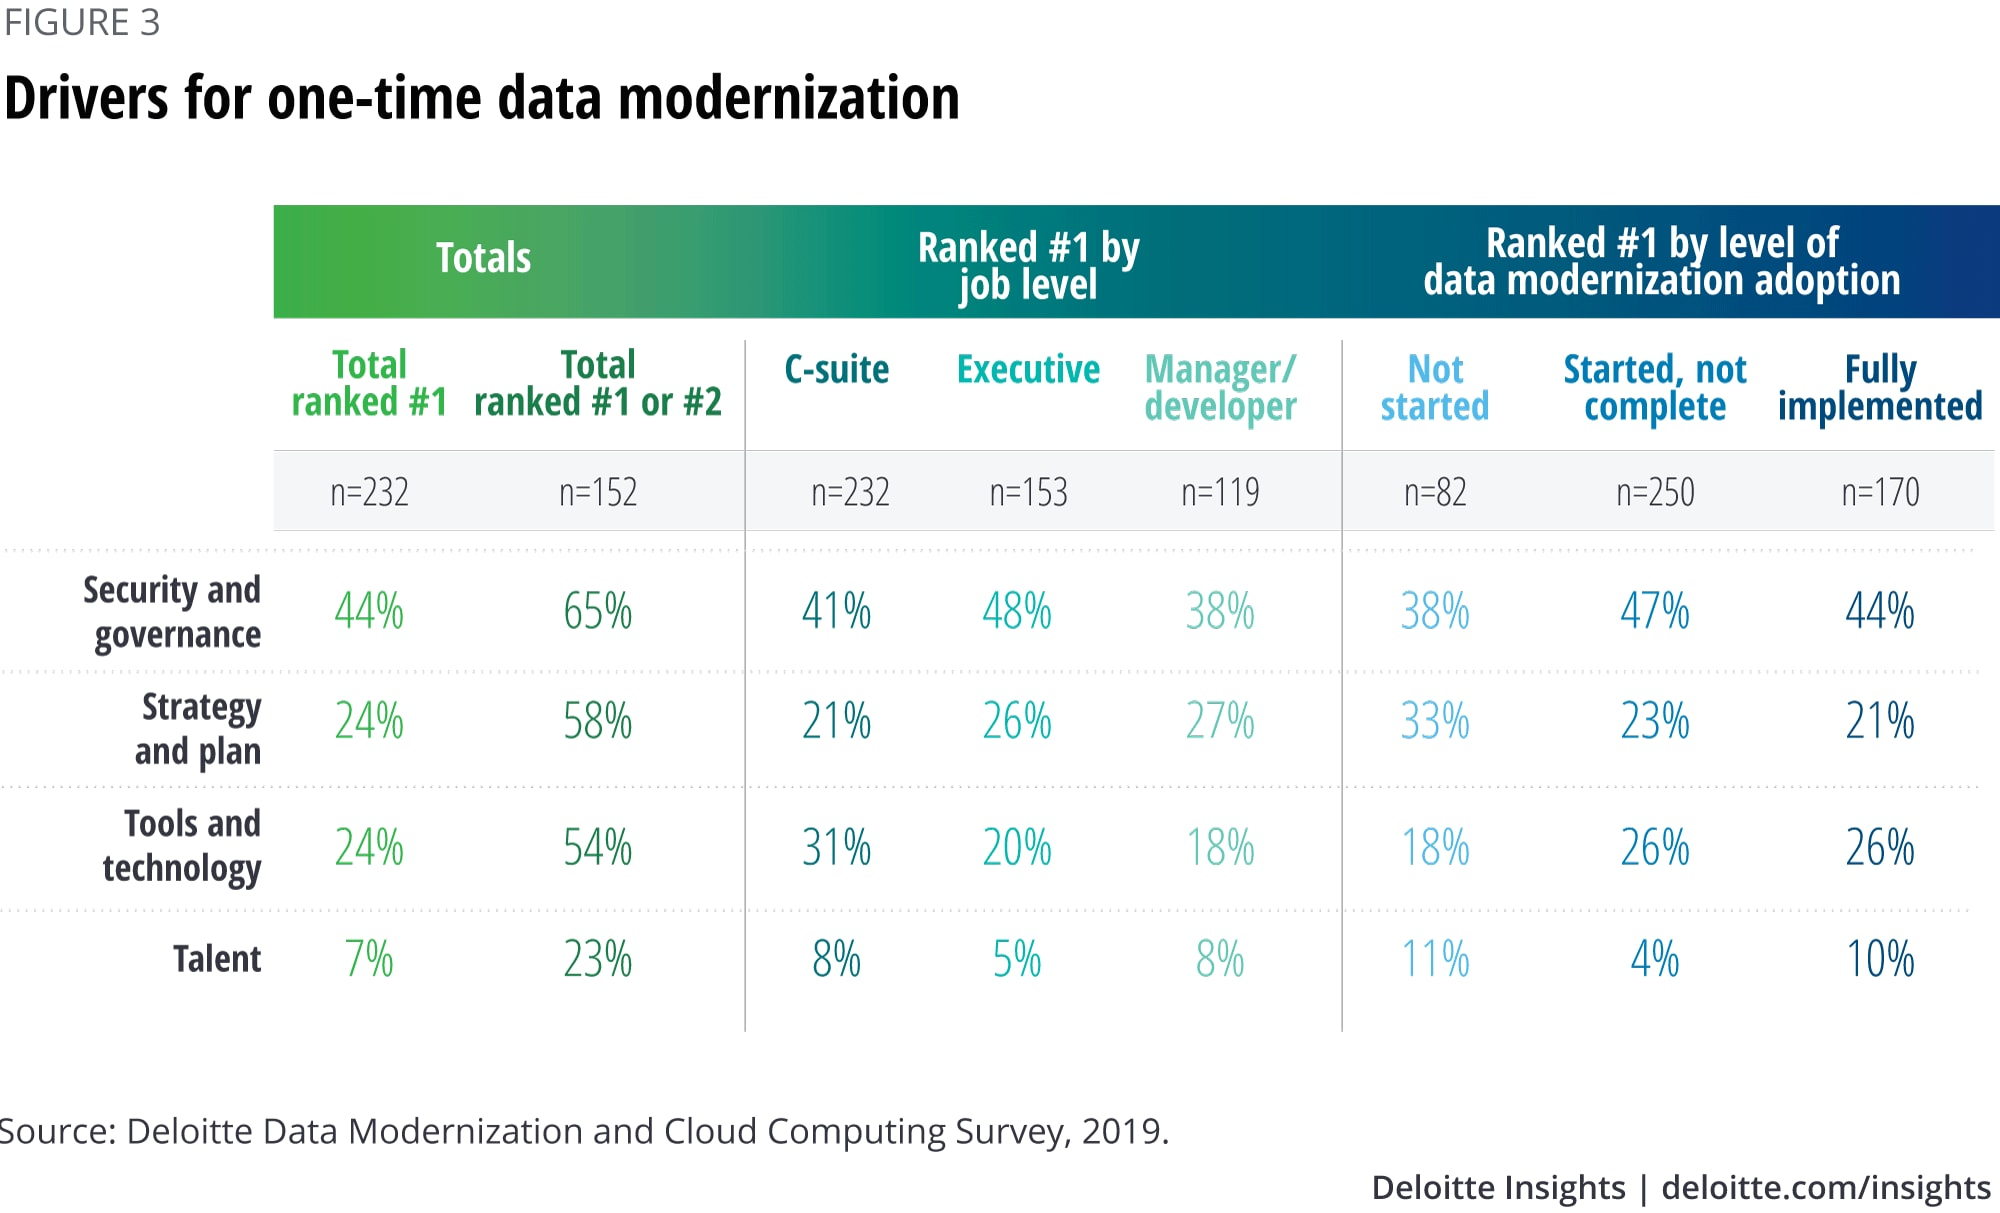 Drivers for one-time data modernization